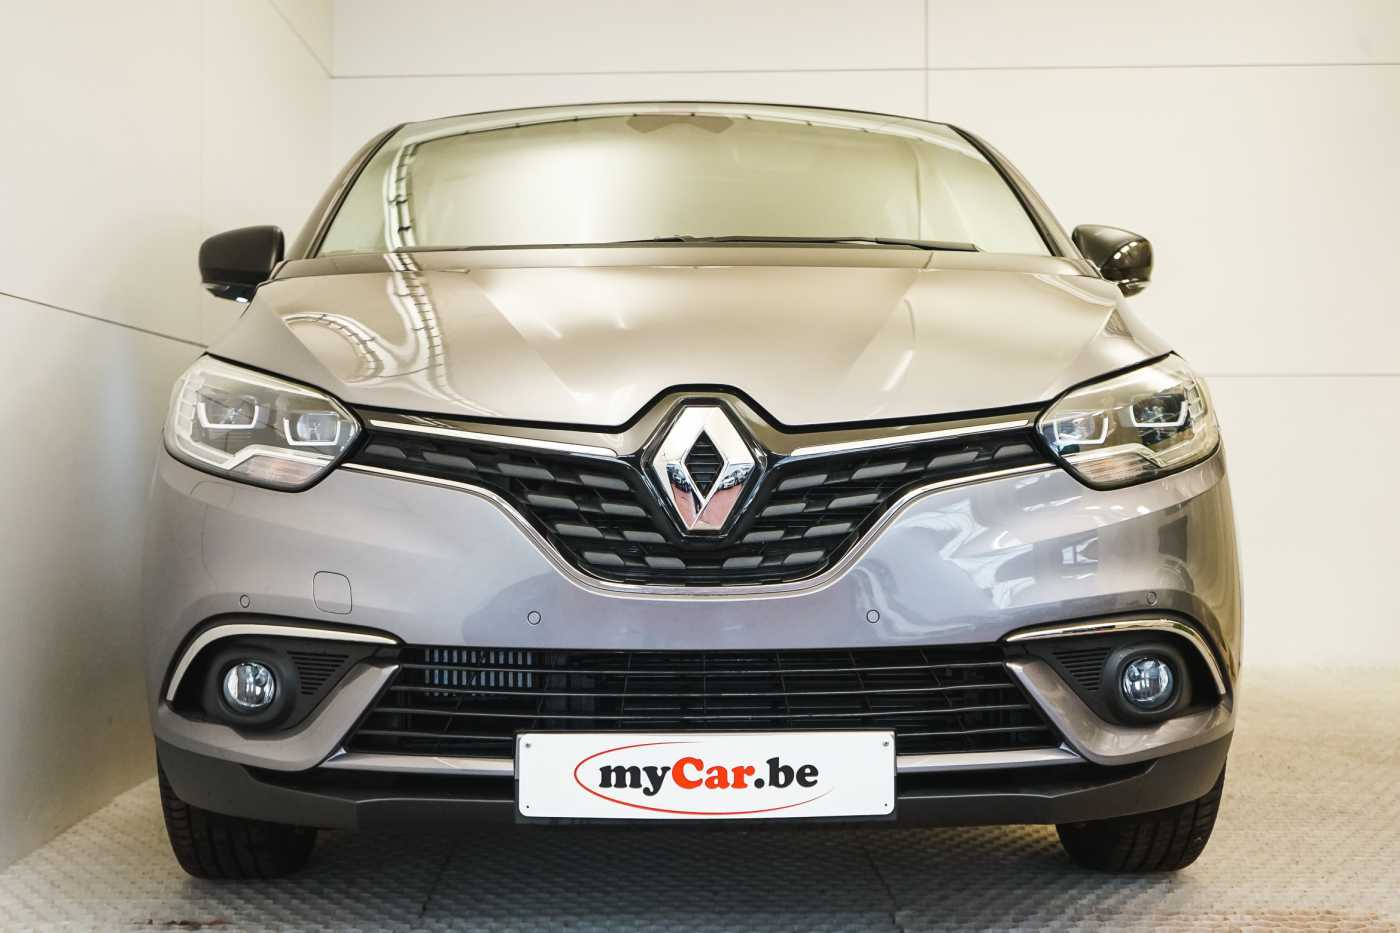 Renault Scenic 1.33 TCe Intense 140 // Pano, Camera, Navi 2/30